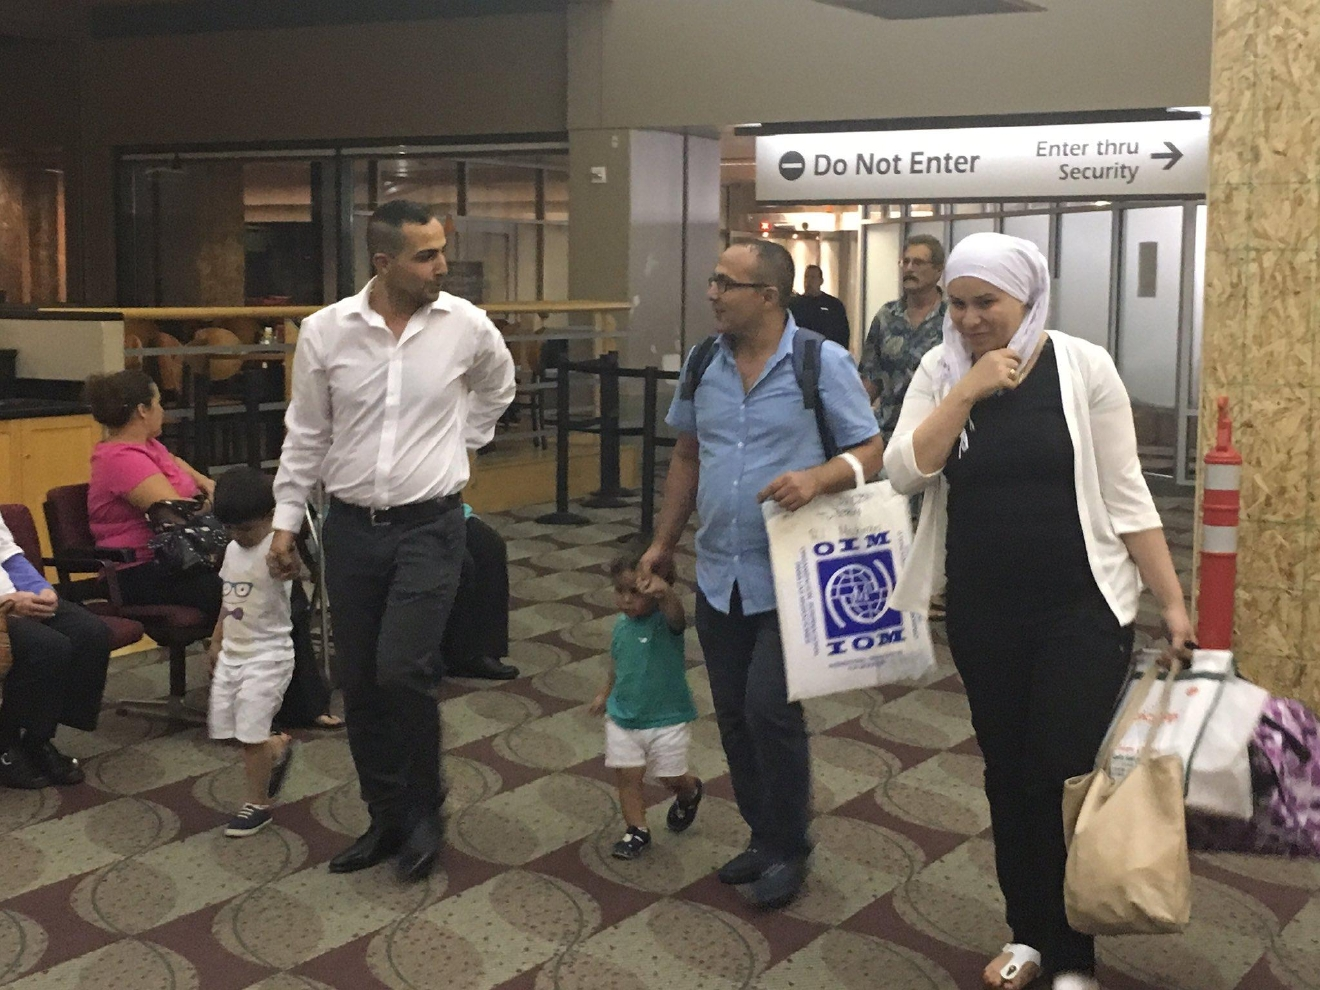 An eager crowd welcomed the Syrian refugee family to Eugene Wednesday night. About 100 volunteers worked to help the family relocate and many of them were at the airport holding posters. (SBG photo)